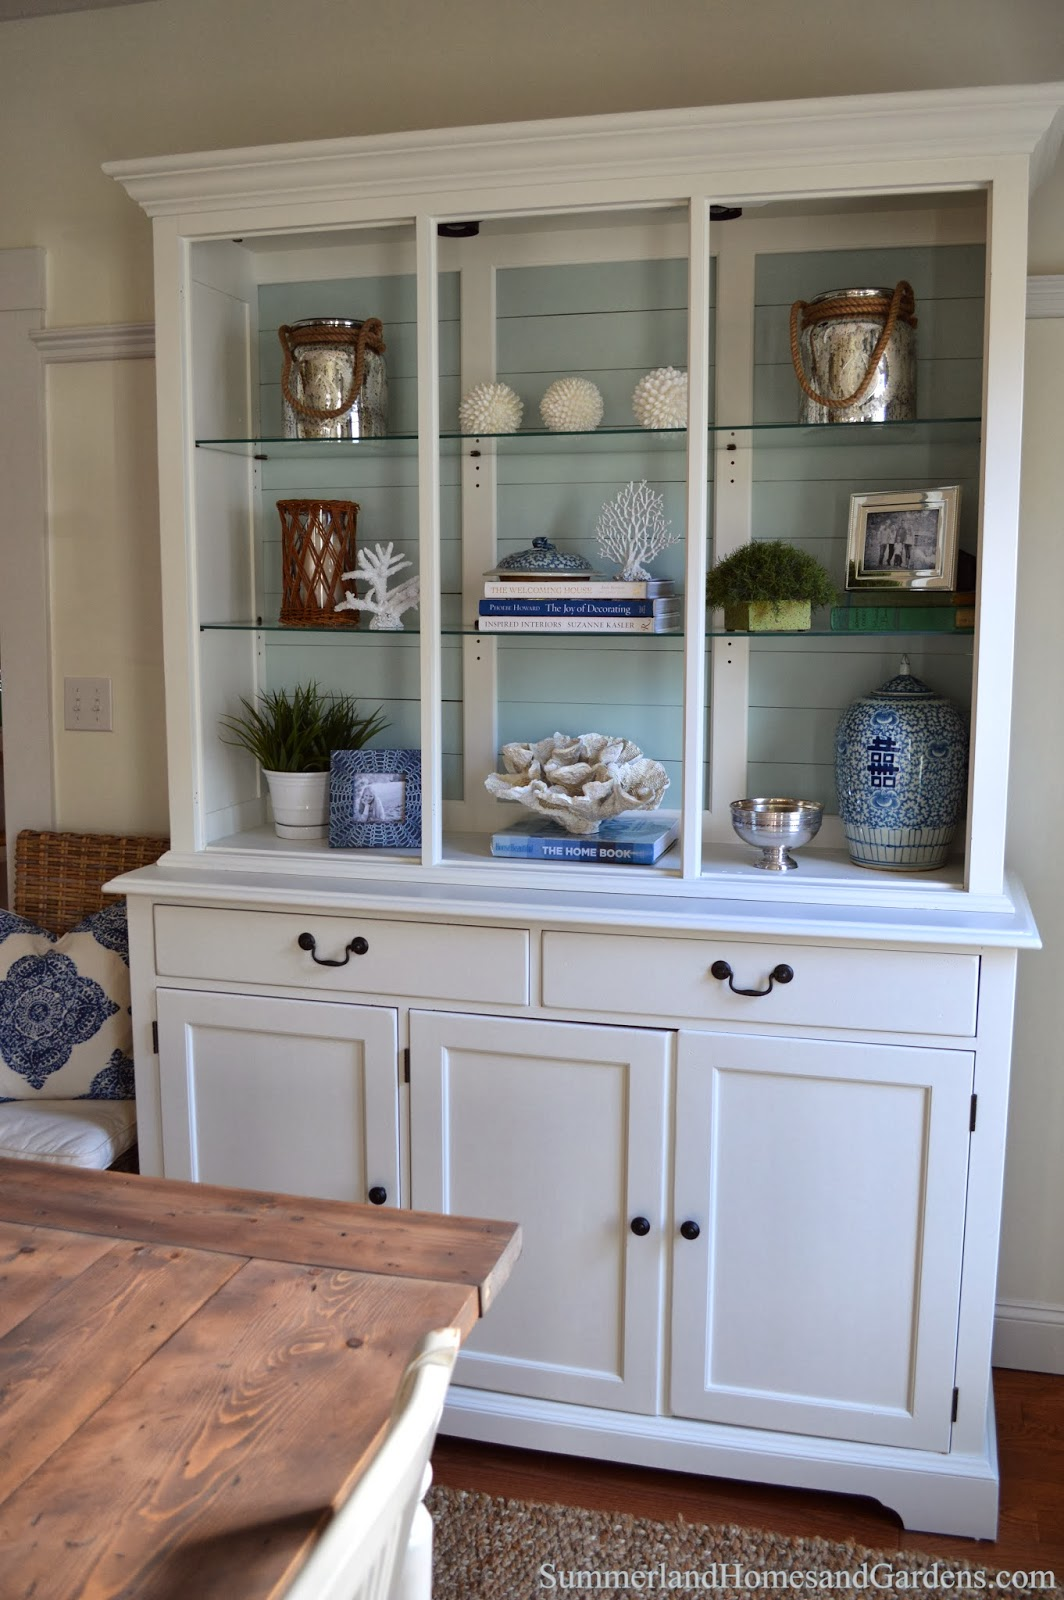 Summerland homes gardens one room challenge source list for Baskets on top of kitchen cabinets